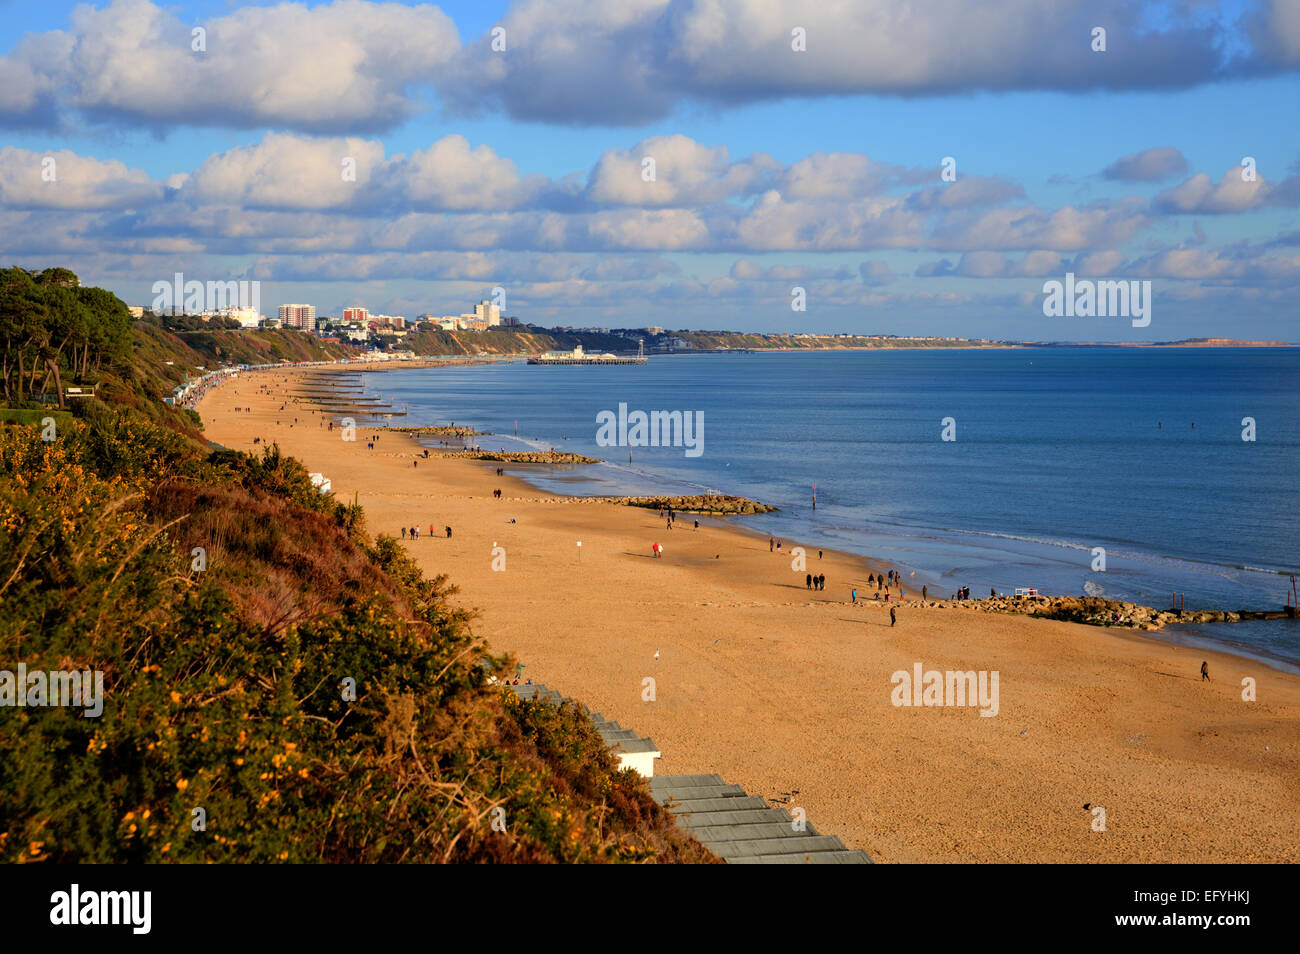 Branksome beach Poole Dorset England UK near to Bournemouth known for beautiful sandy beaches Stock Photo